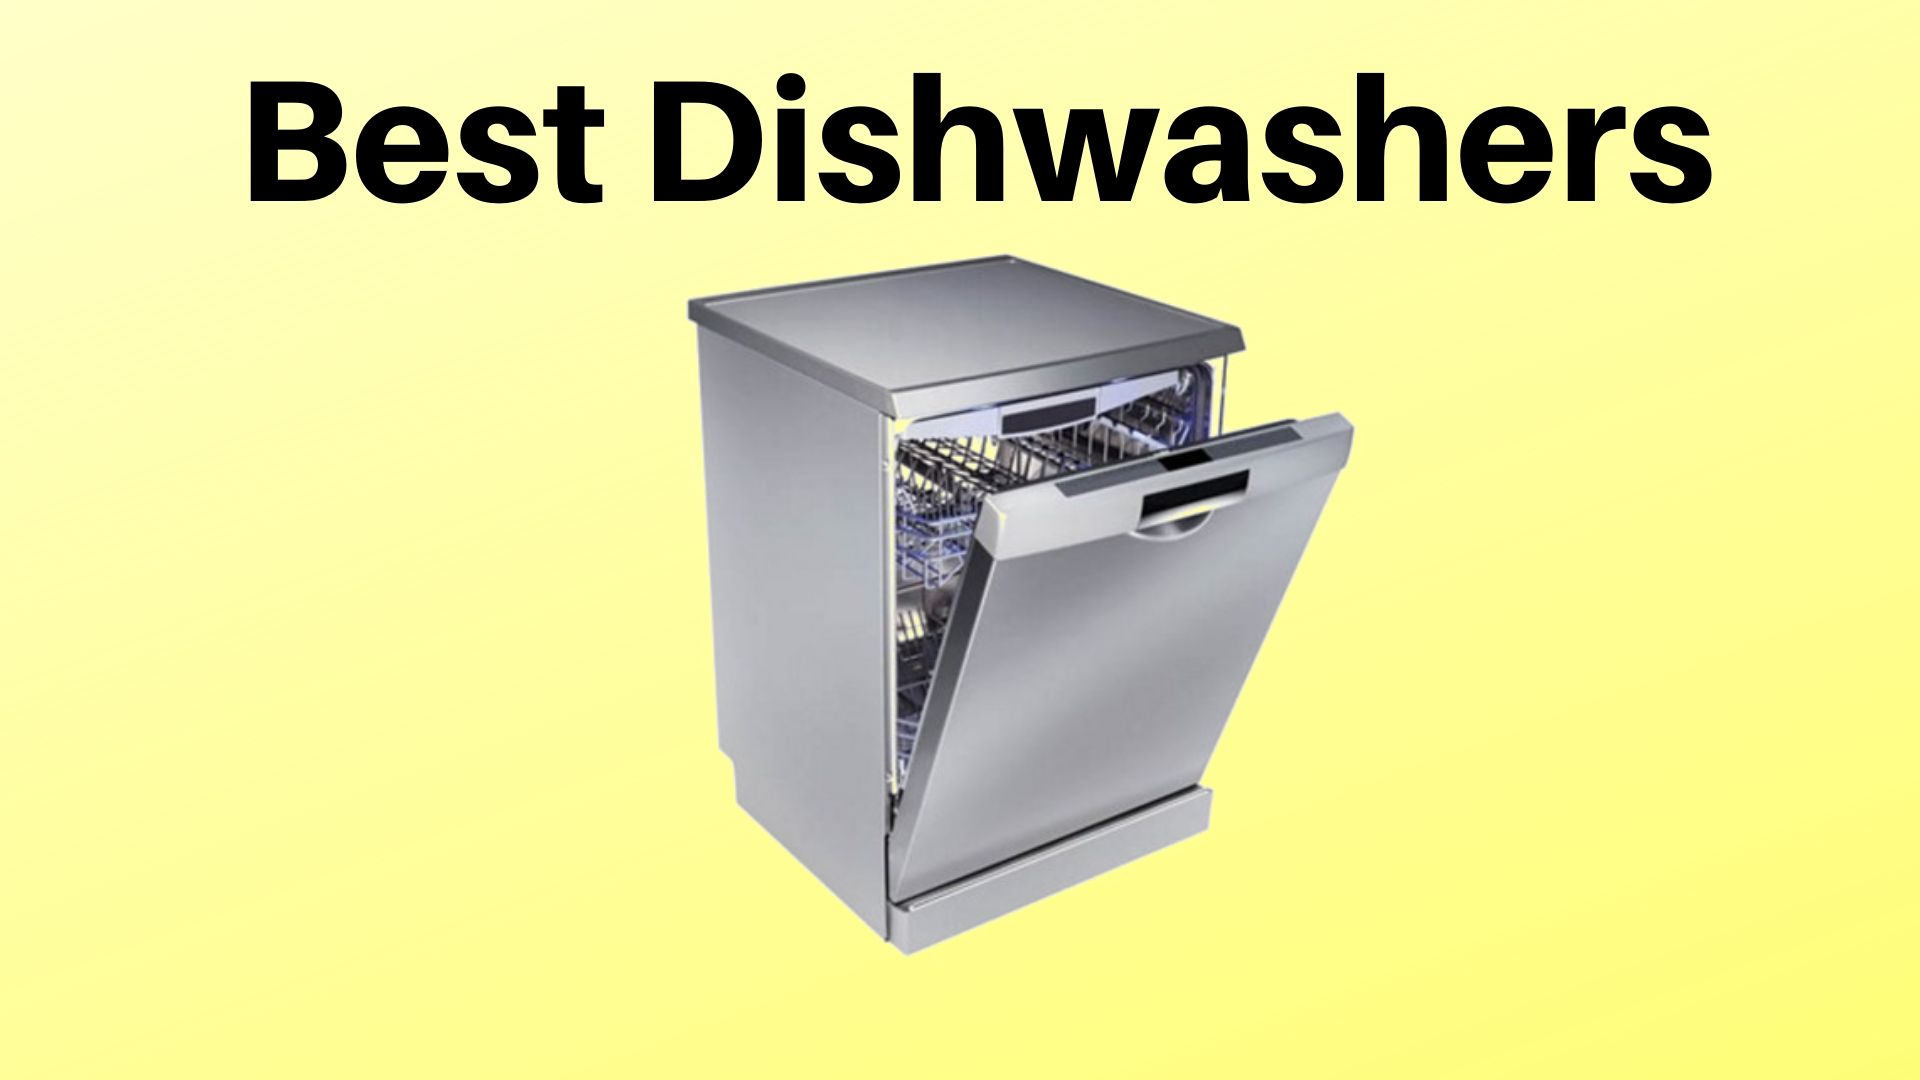 Best Bosch Dishwasher 2021 15+ Best Dishwashers in 2021 (Best Selling Dishwashers)